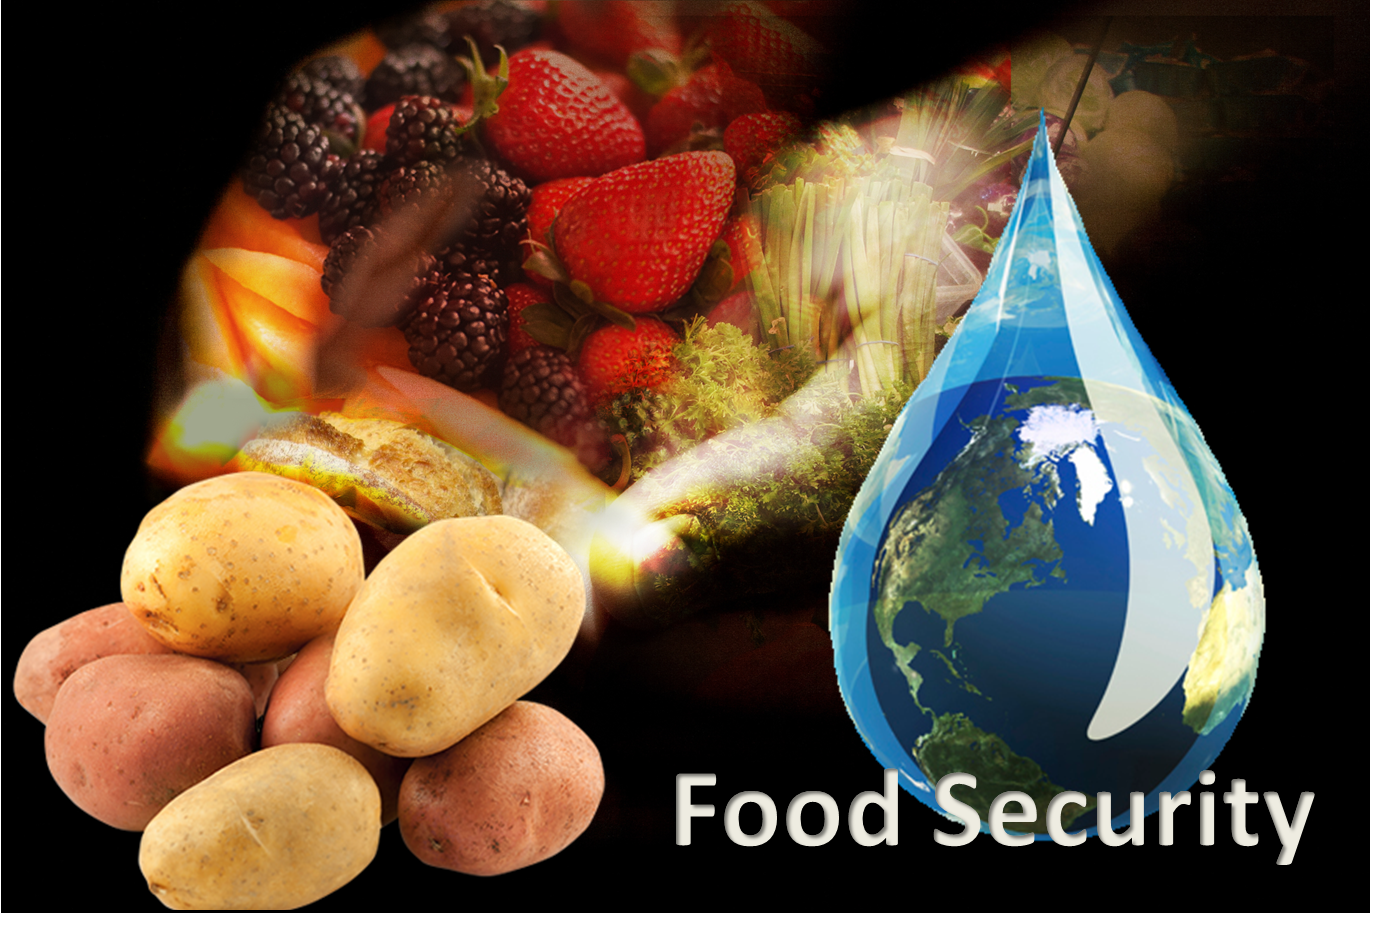 Food security clipart vector black and white download Food security clipart - ClipartFest vector black and white download